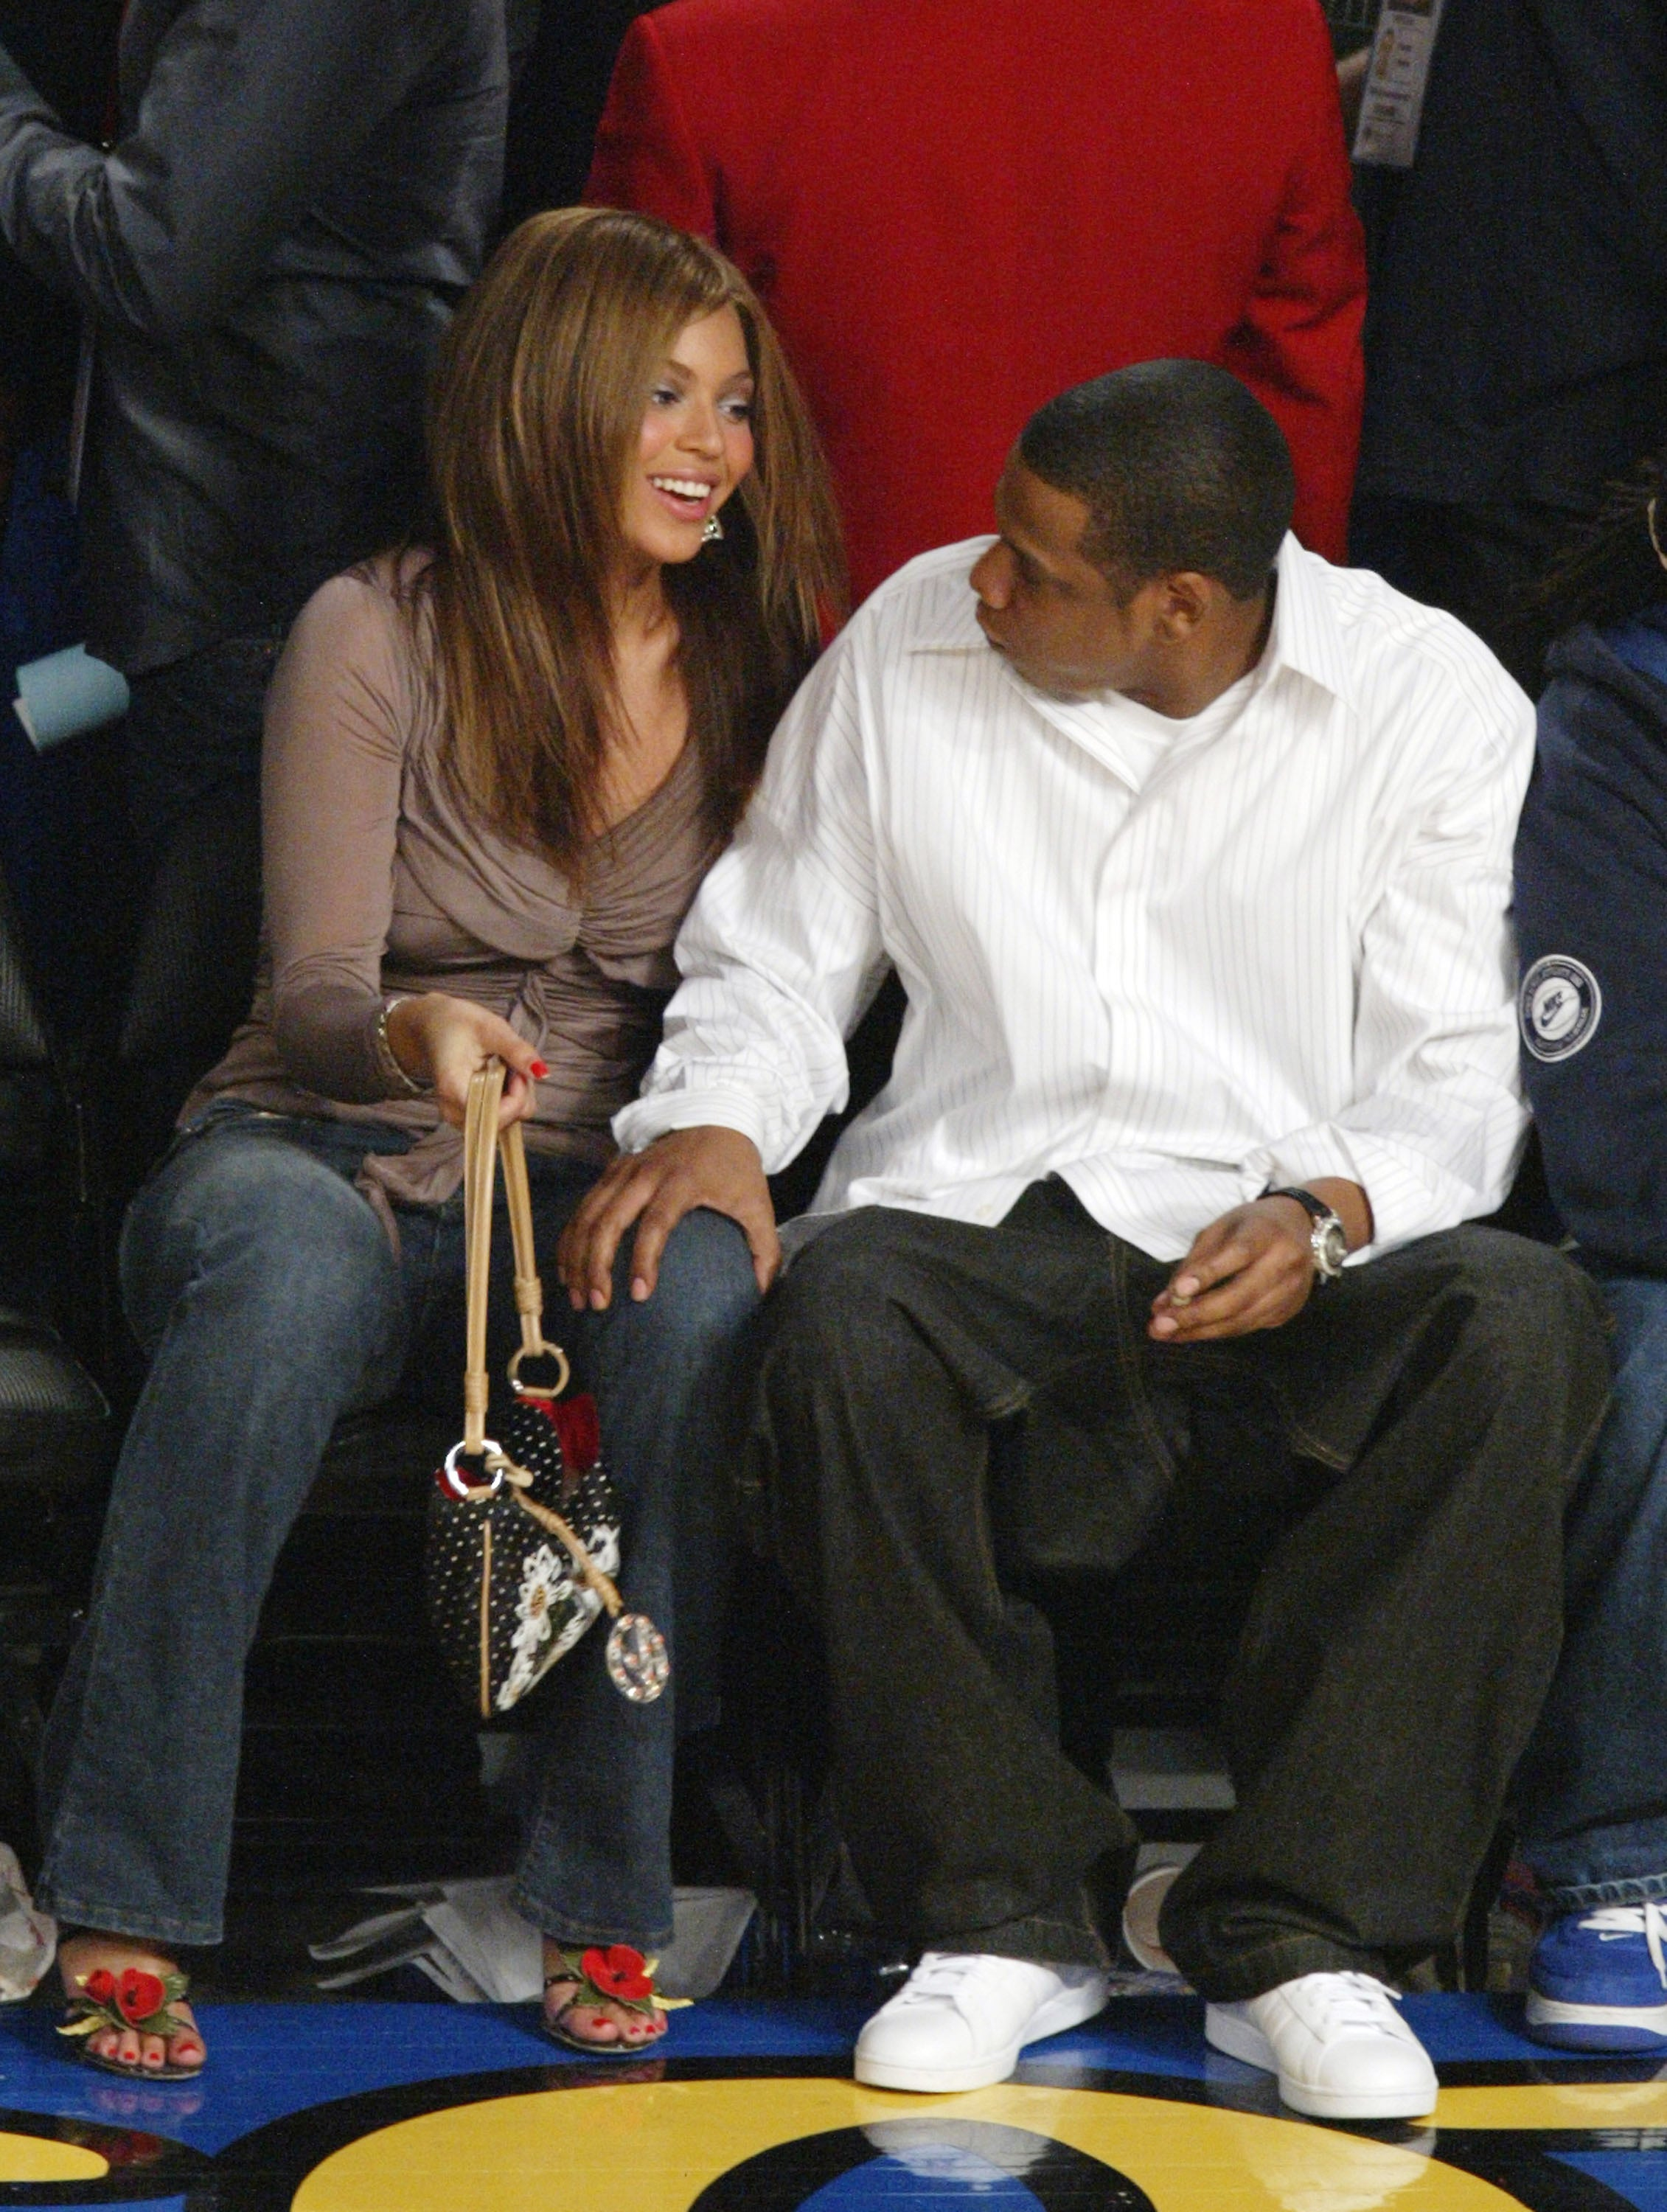 19faf09d08d9f6 Best Photos Of Beyonce and Jay-Z Courtside at NBA Games Over The ...